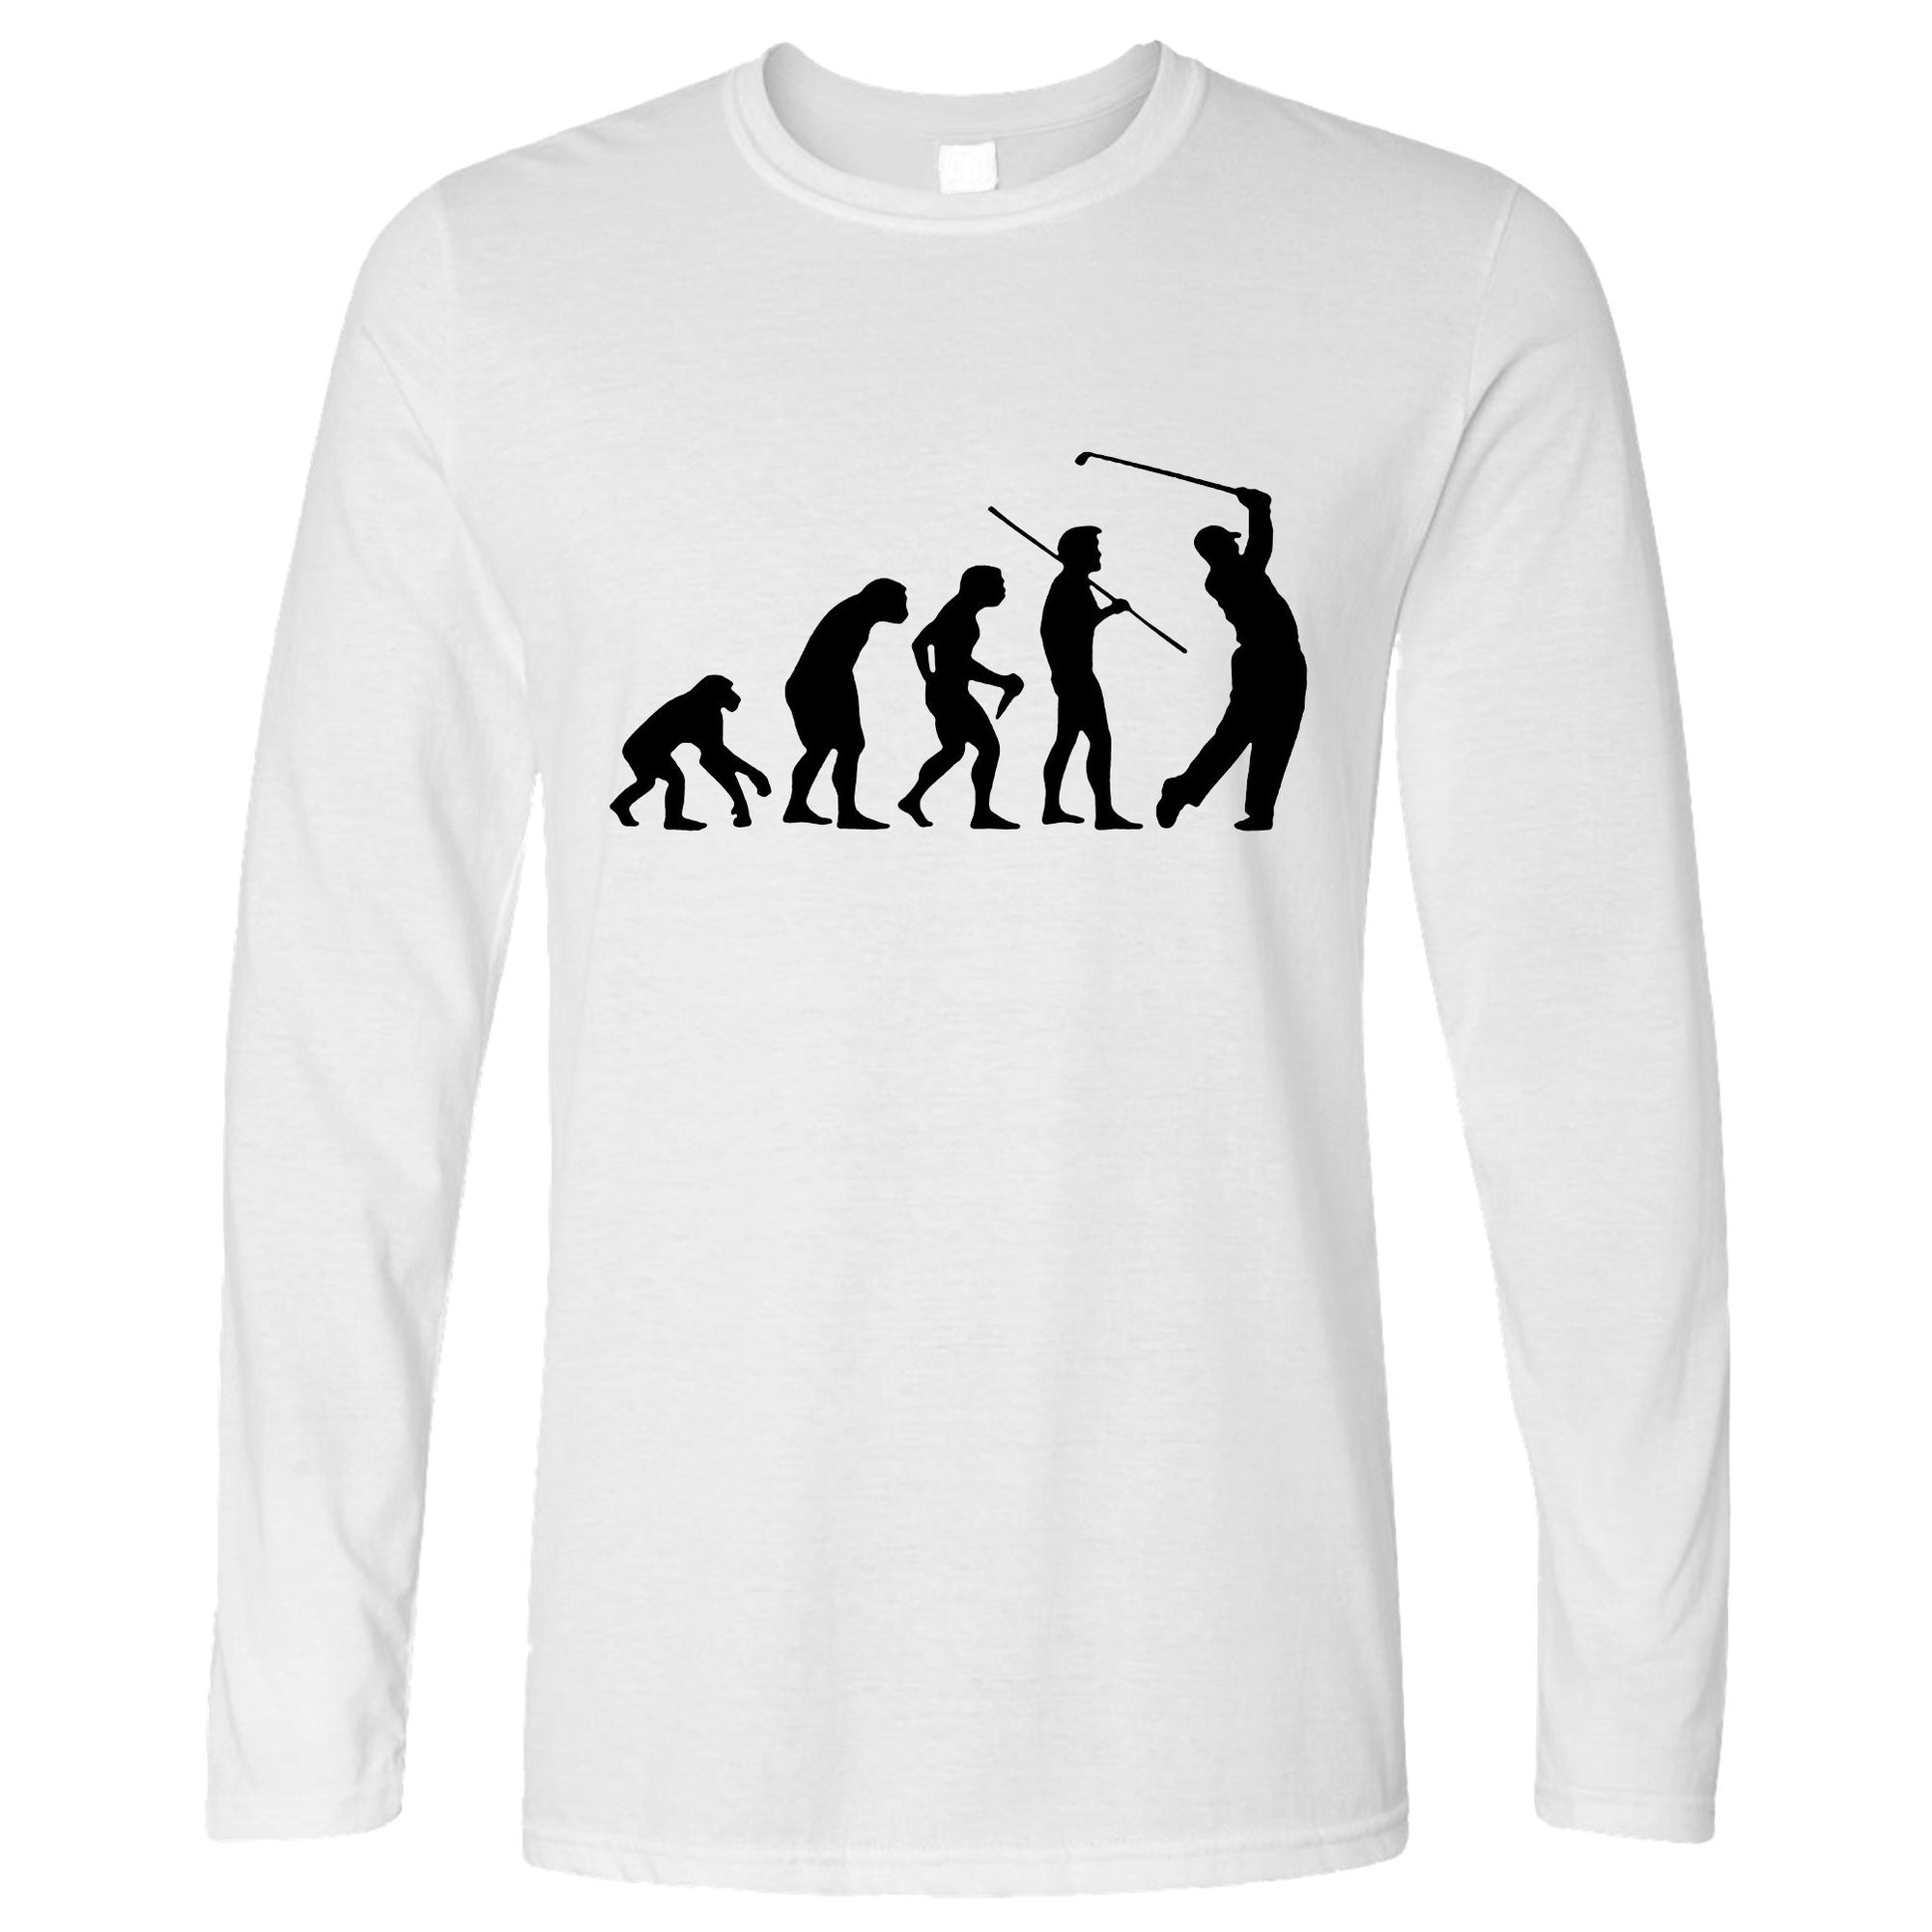 Novelty Golf Long Sleeve Evolution Of A Golfer T-Shirt